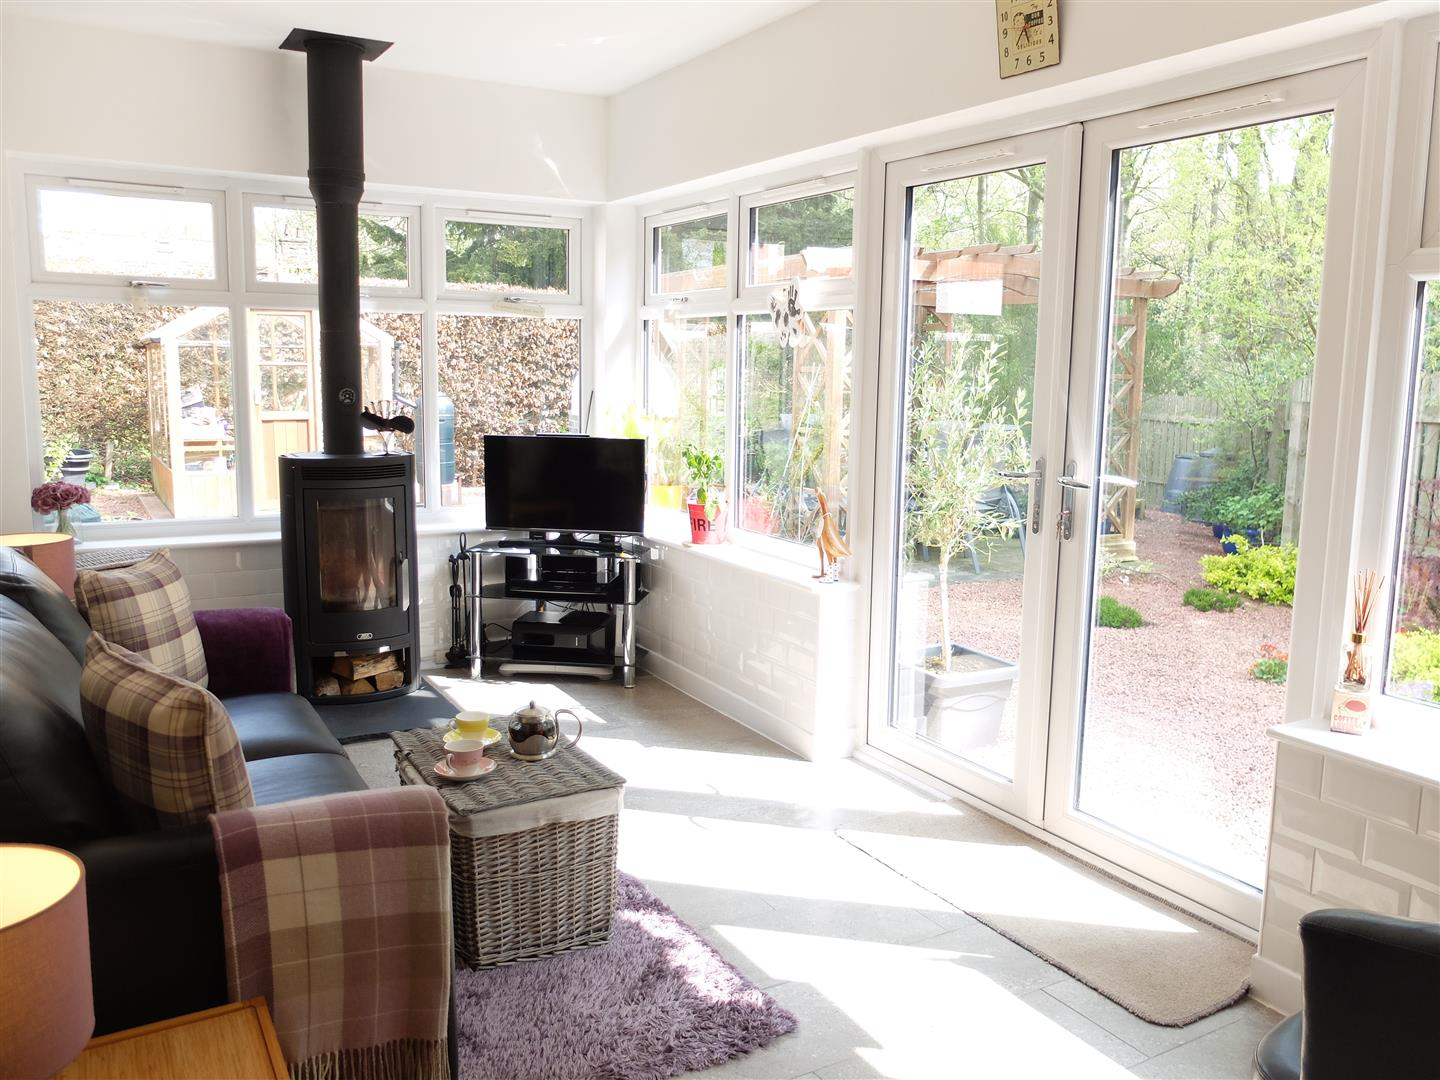 3 Bedrooms House - Detached For Sale 3 Maple Gardens Carlisle